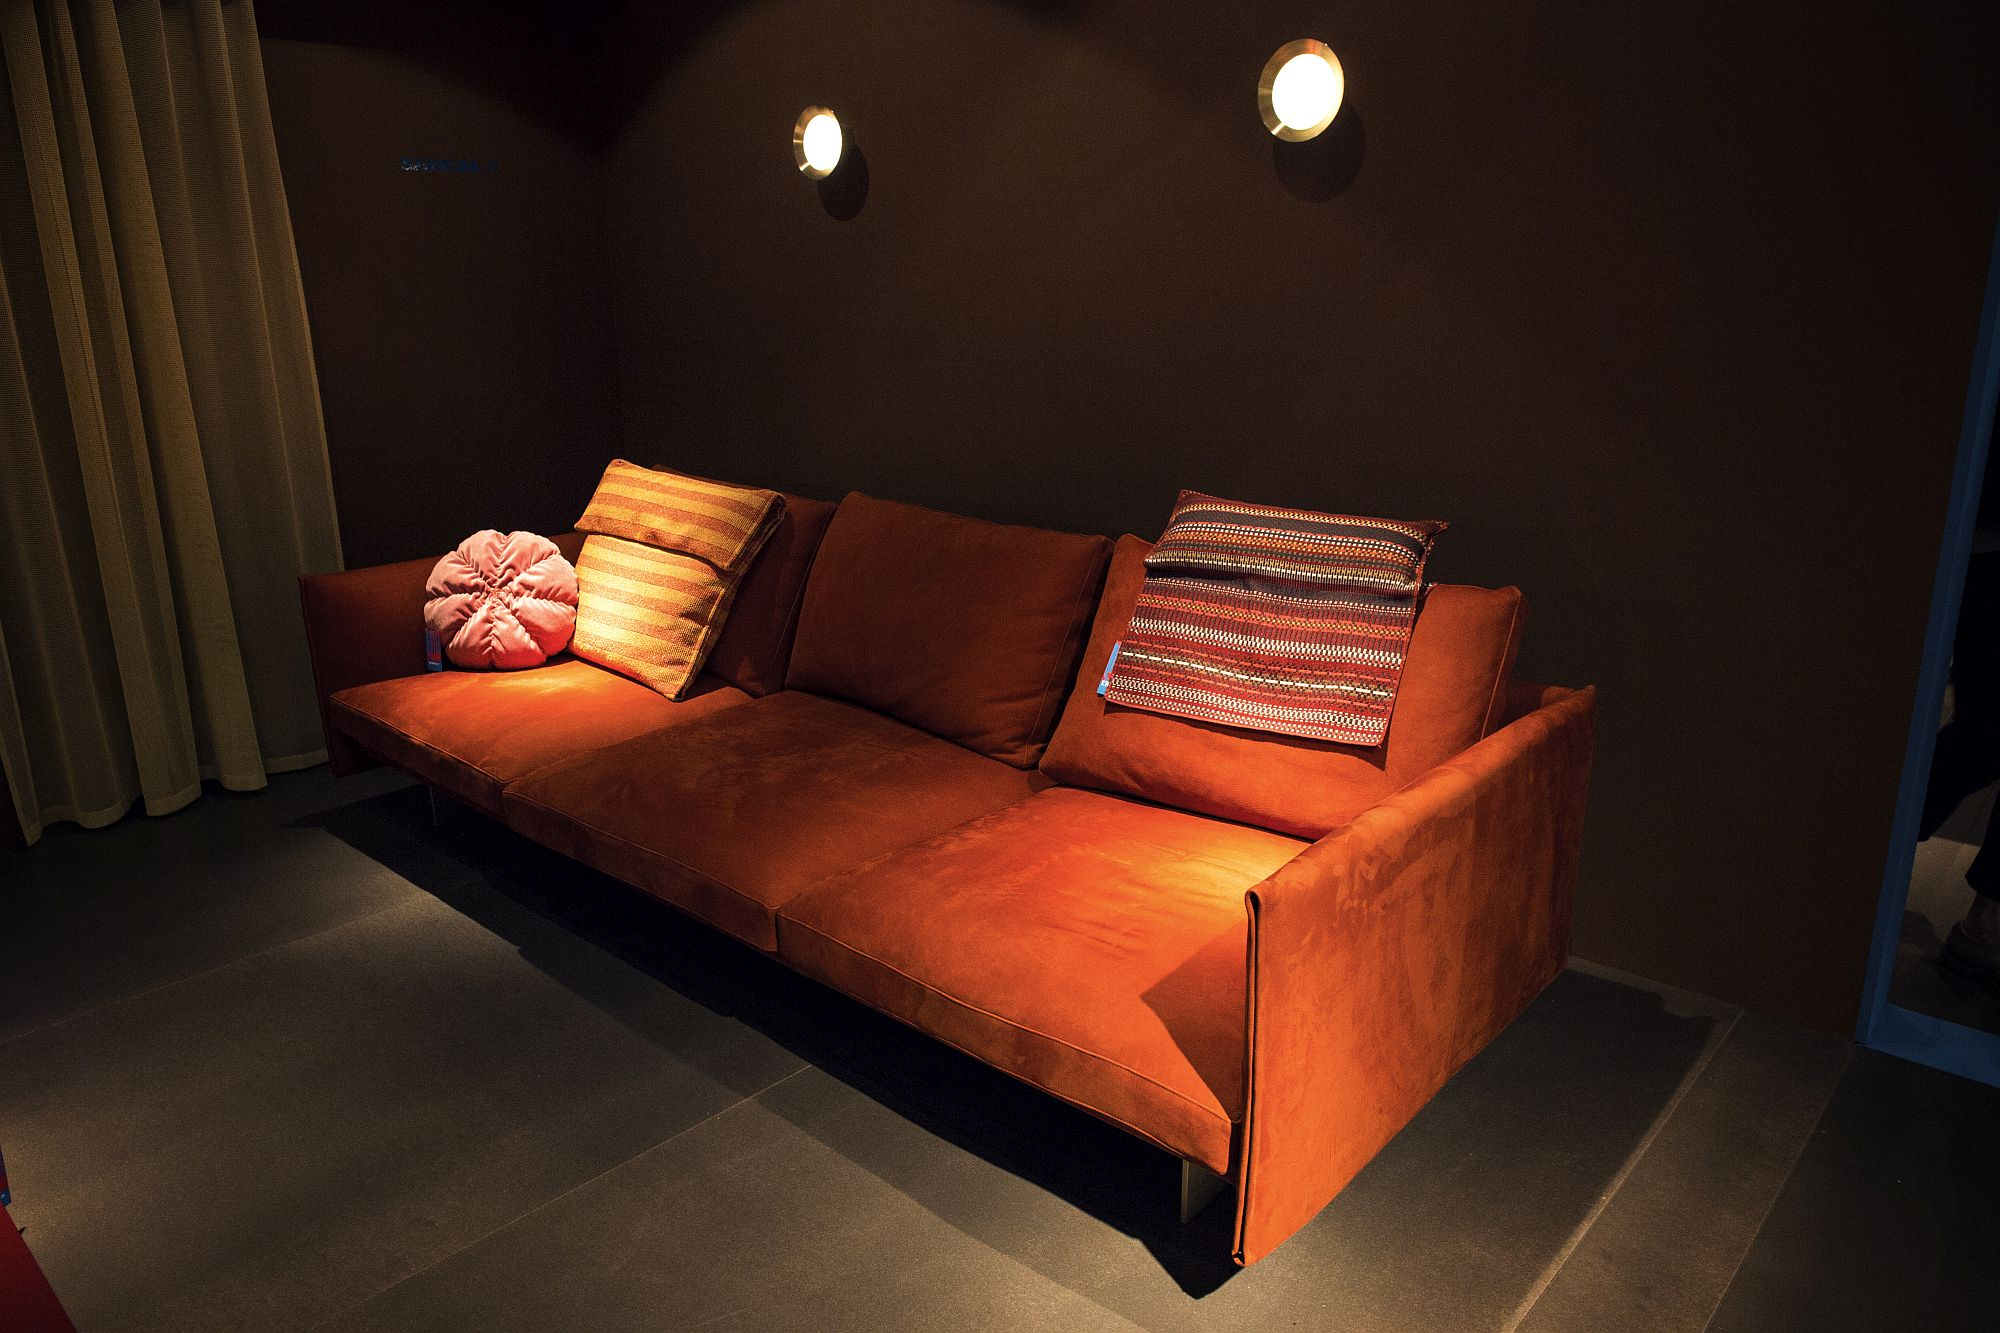 Modern orange couch for those who absolutely love orange spunk!